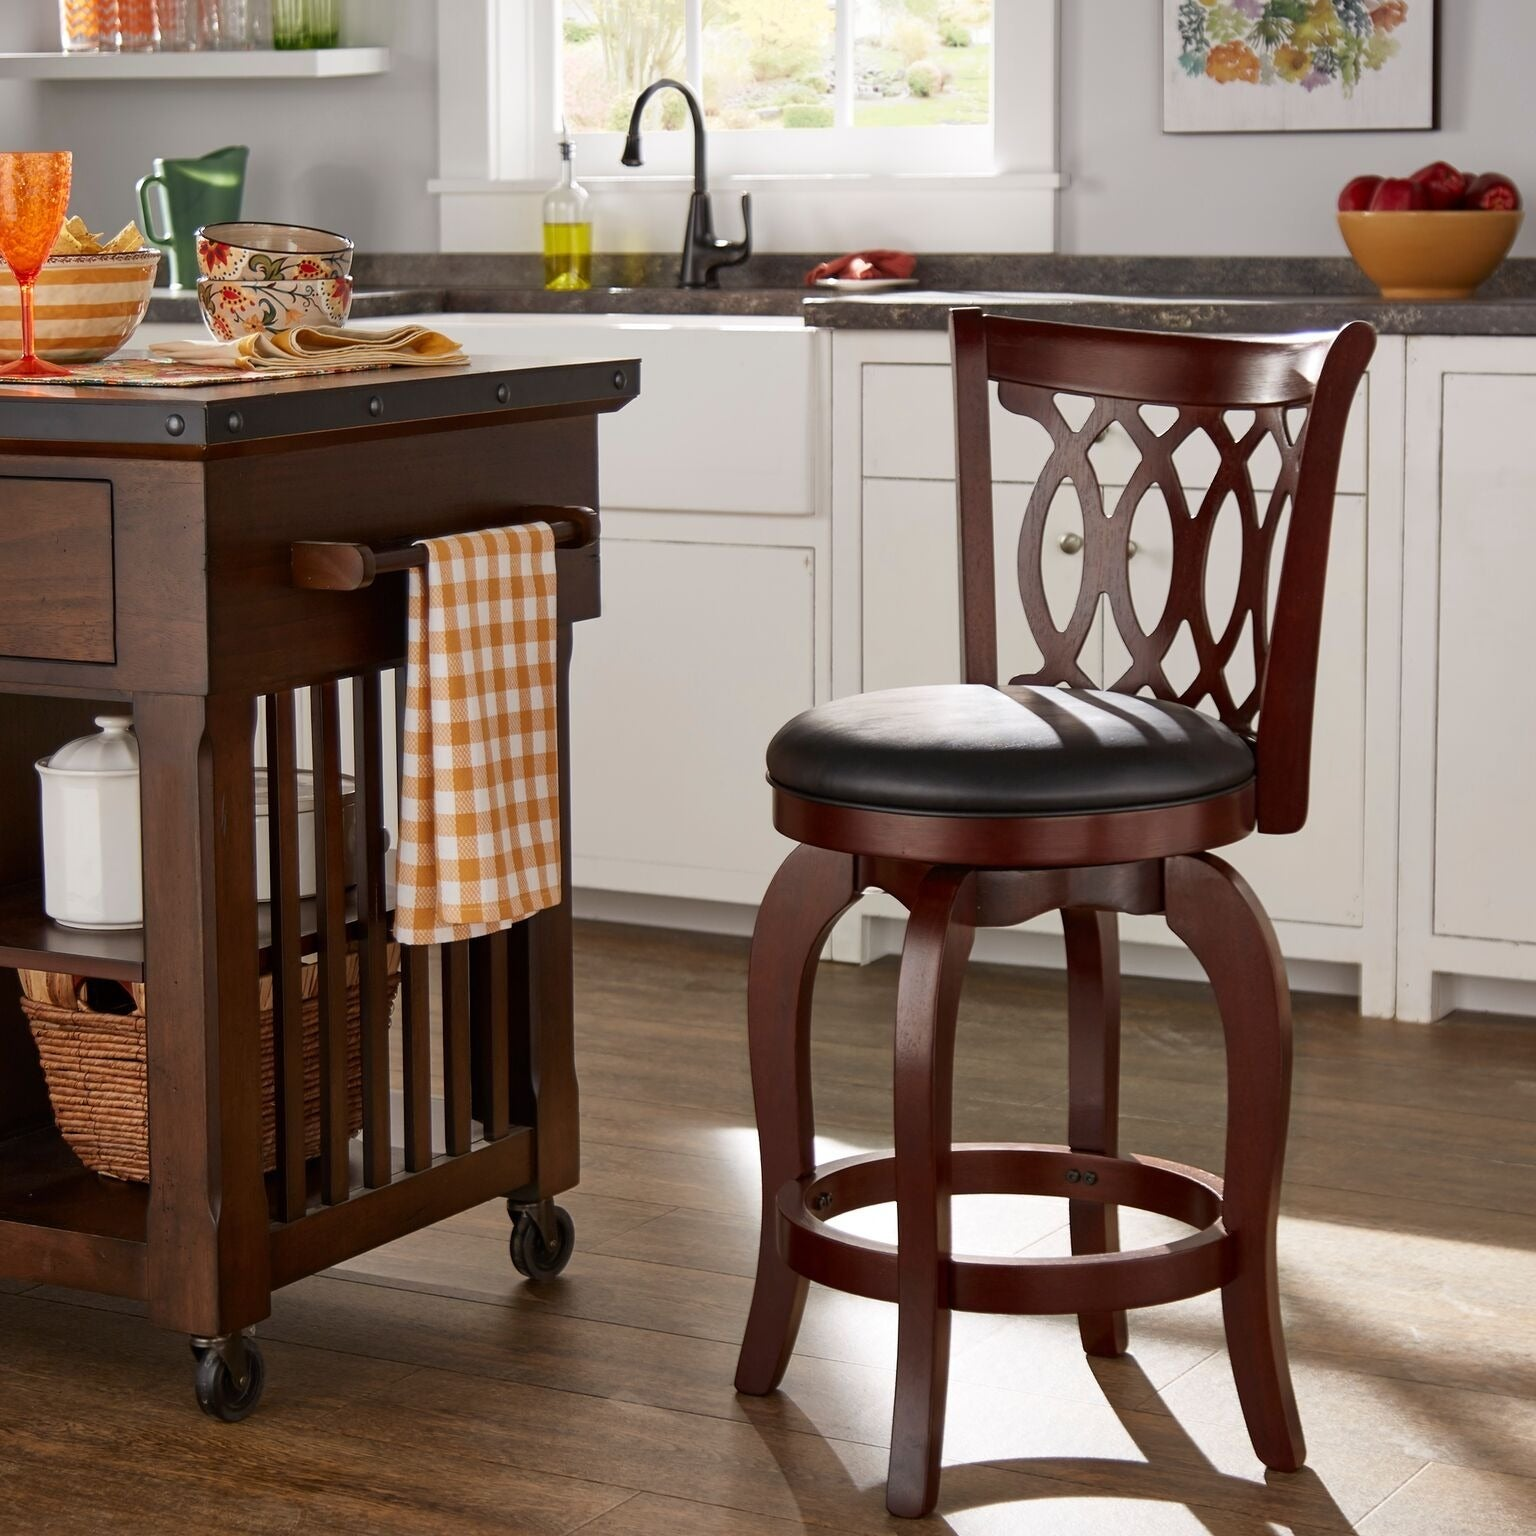 counter modern chair stool stools bars fabric and chairs bar height grey in